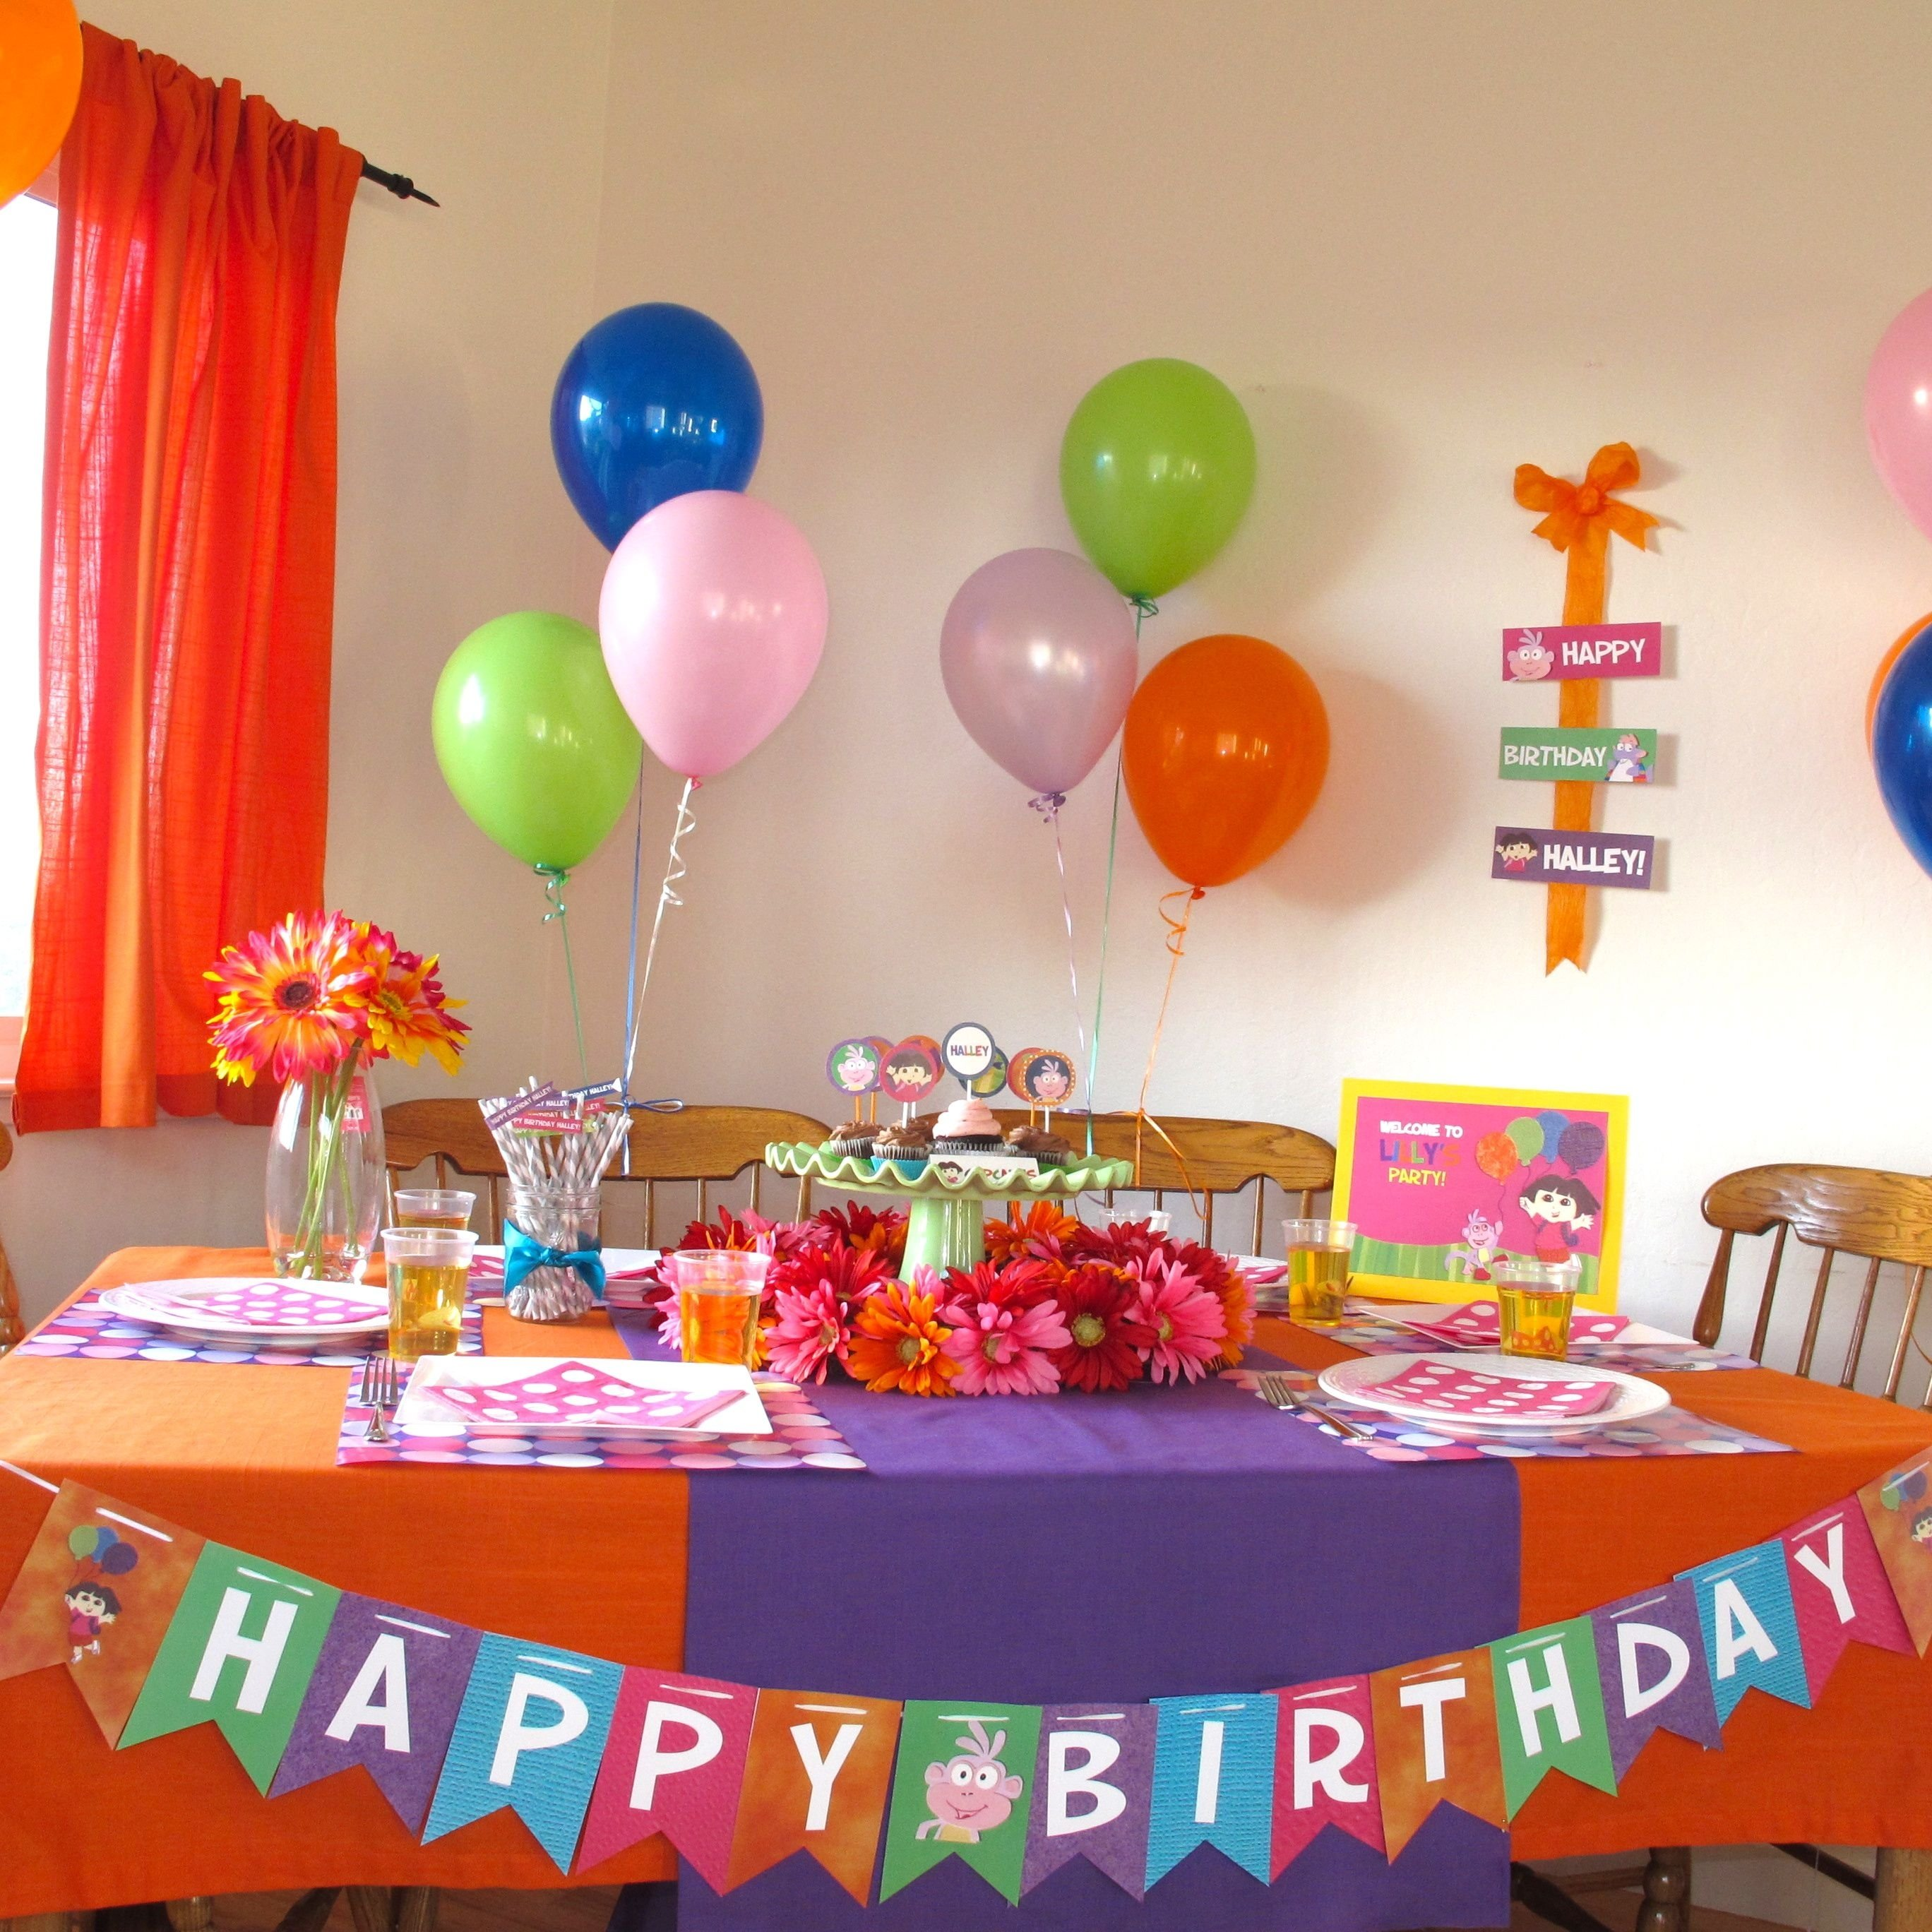 dora the explorer party pics | banners, birthdays and birthday party